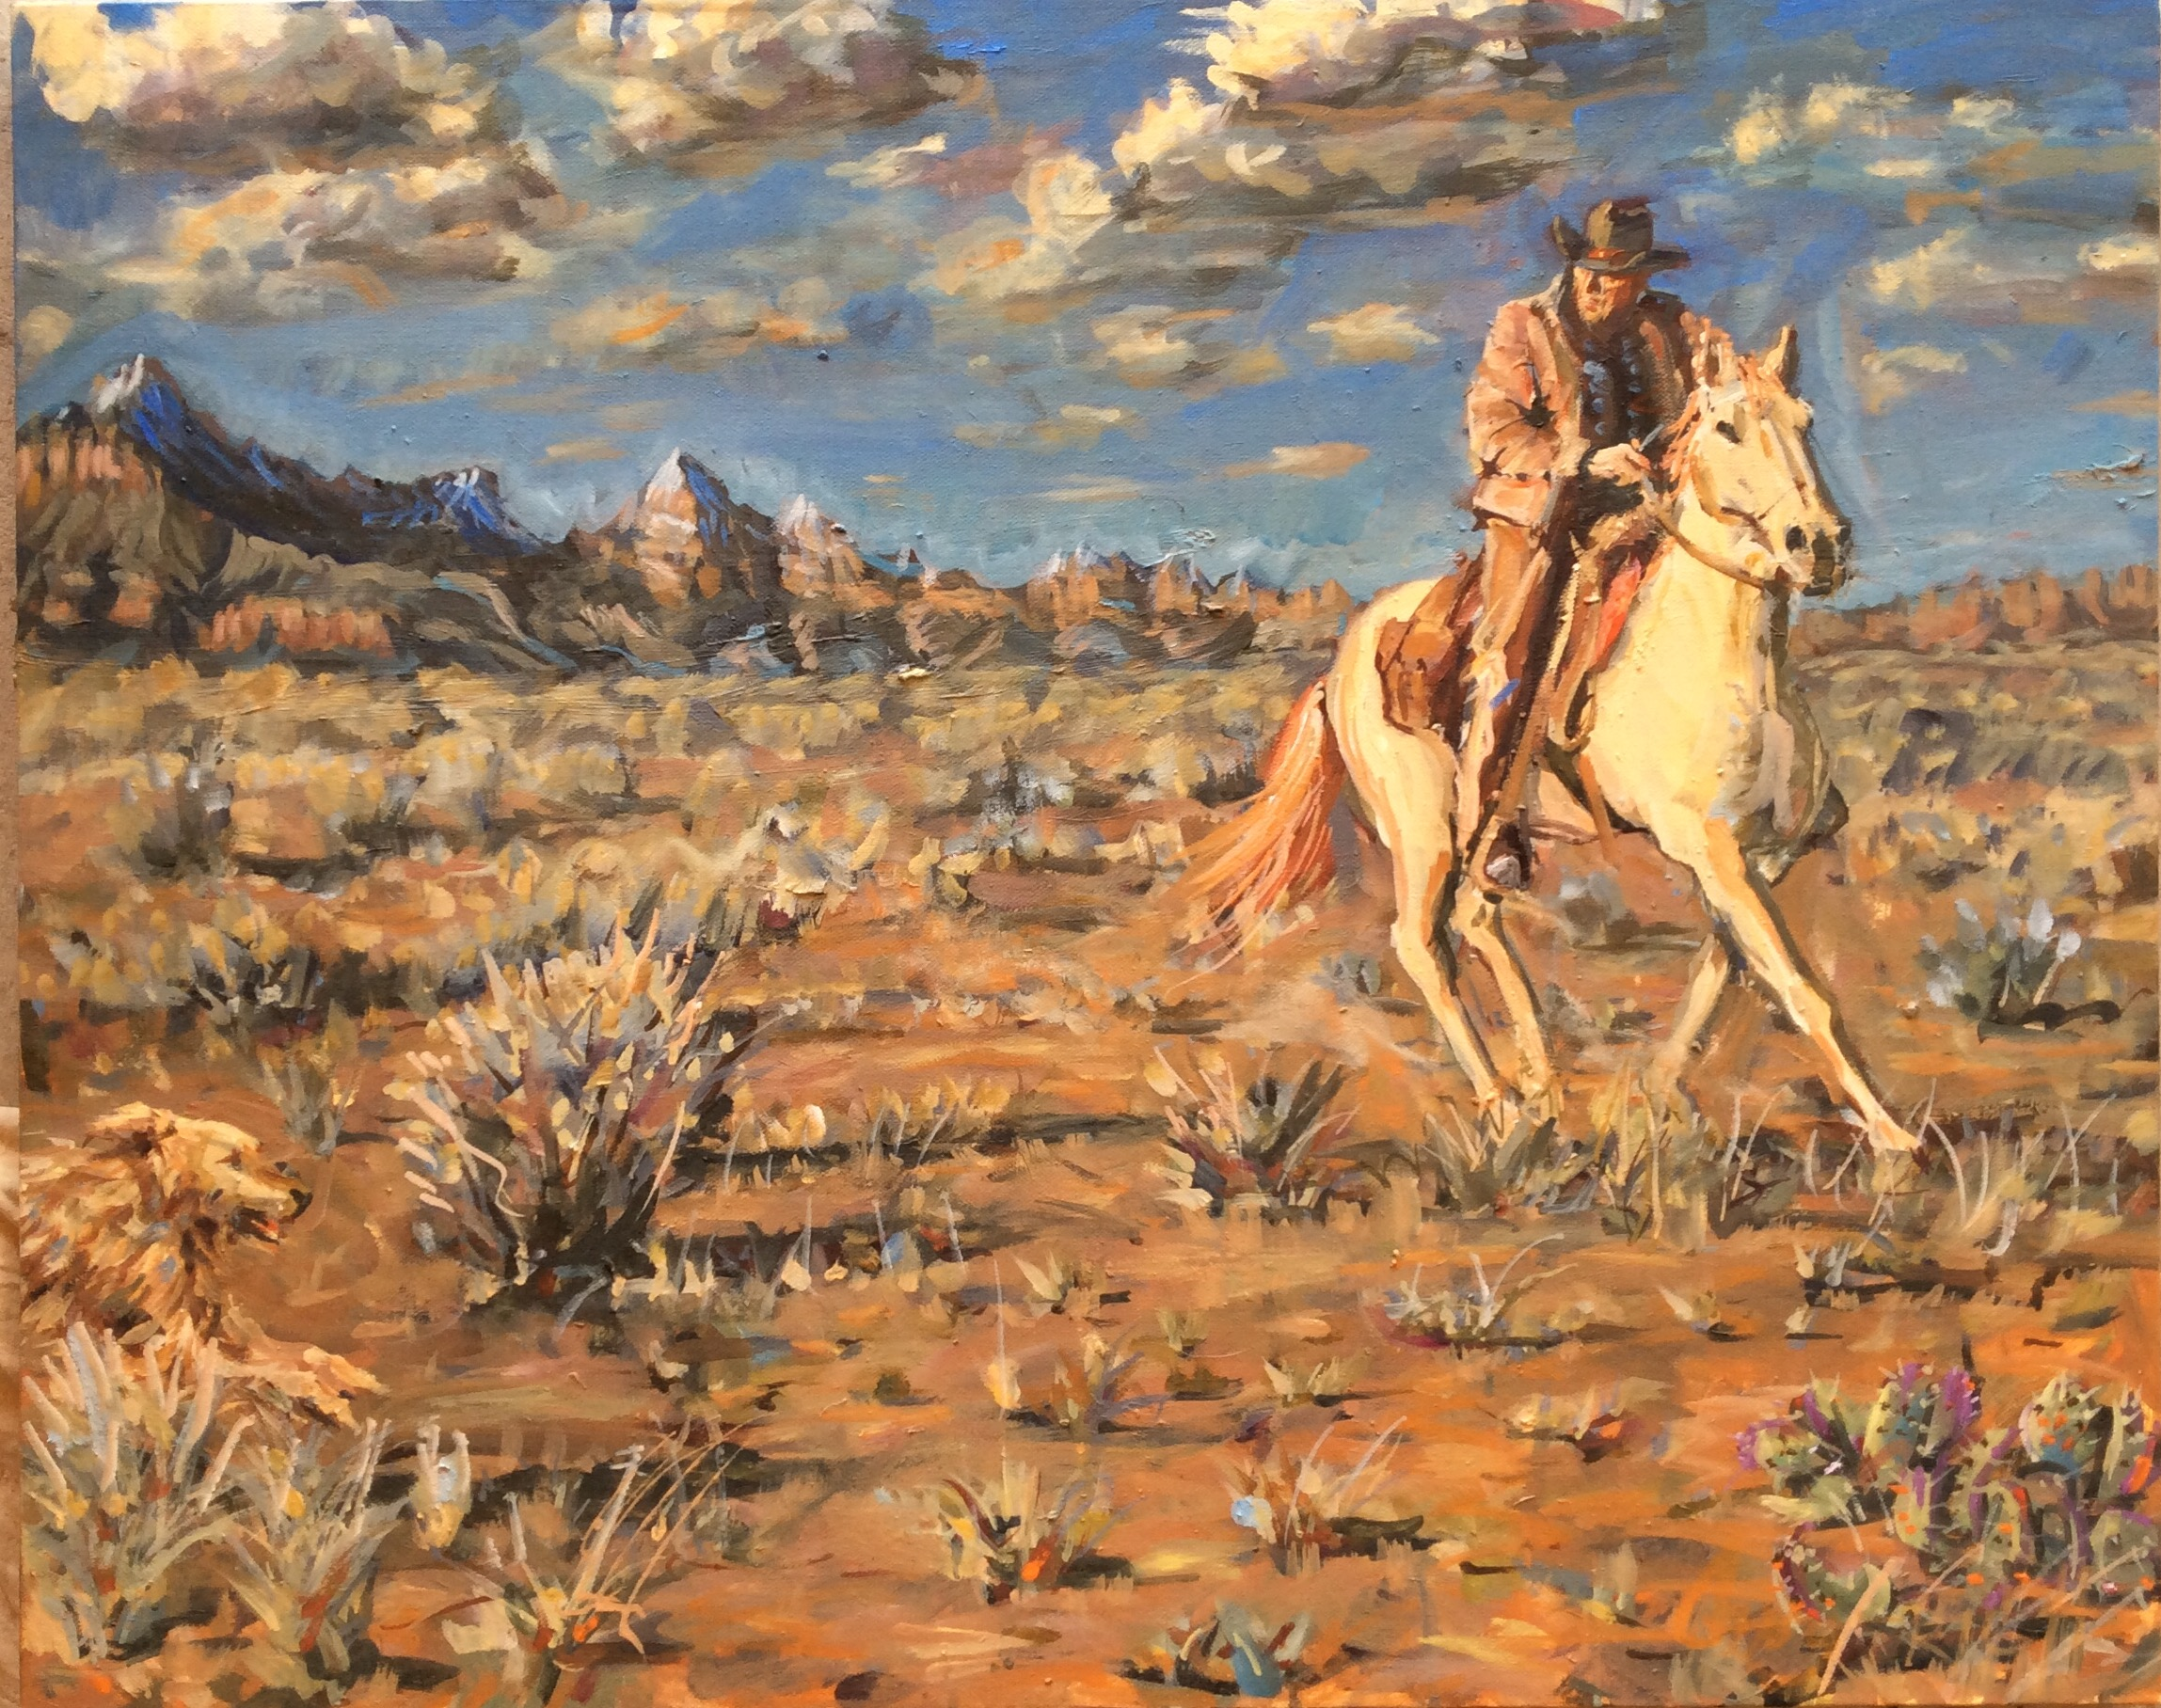 Riding the High Desert  24 x 30 inches, oil on canvas